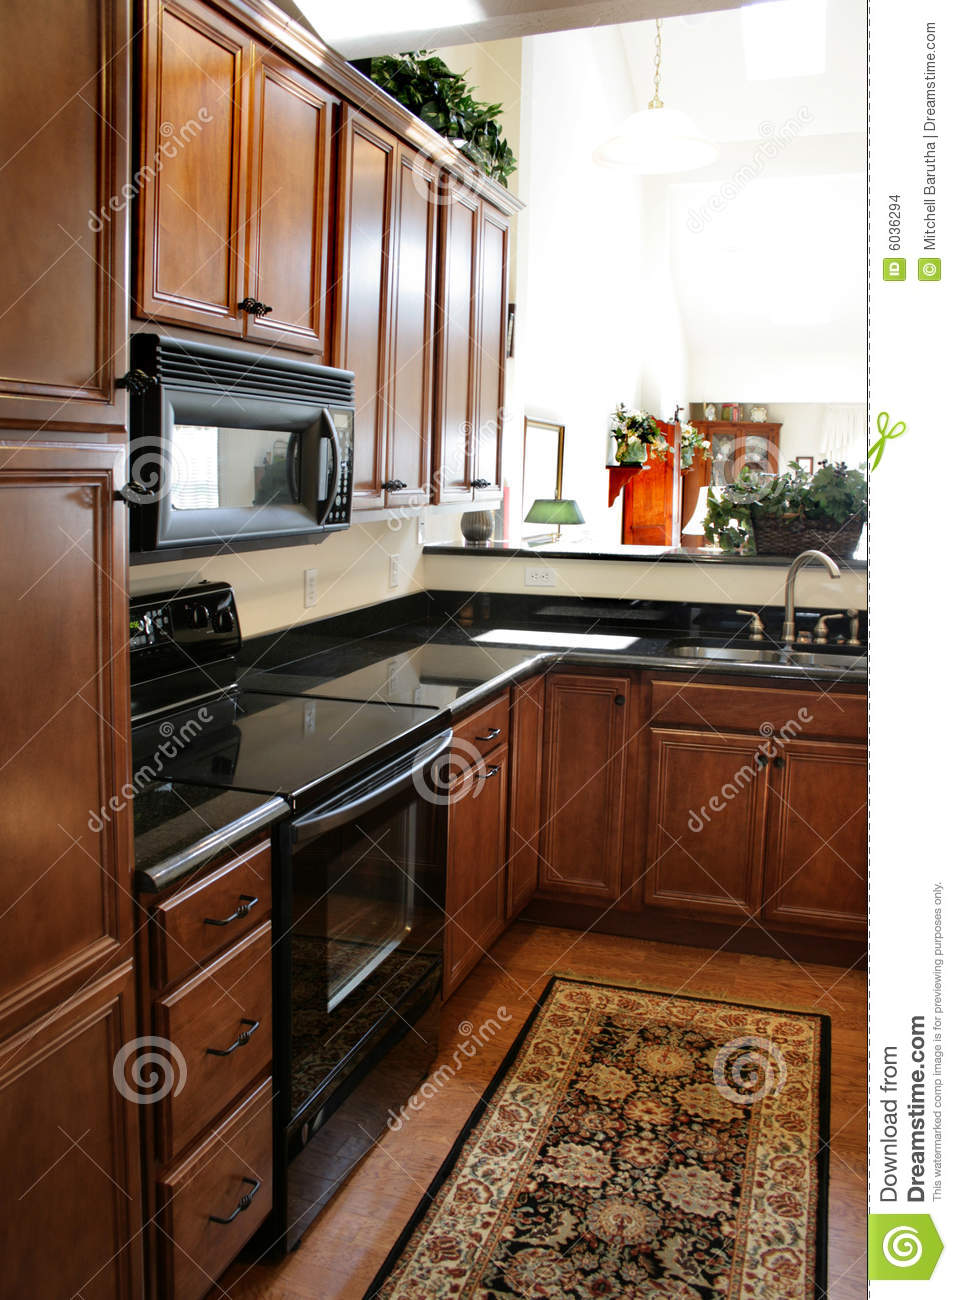 Kitchen wood cabinets black and stainless stove stock - Black and wood kitchen ...